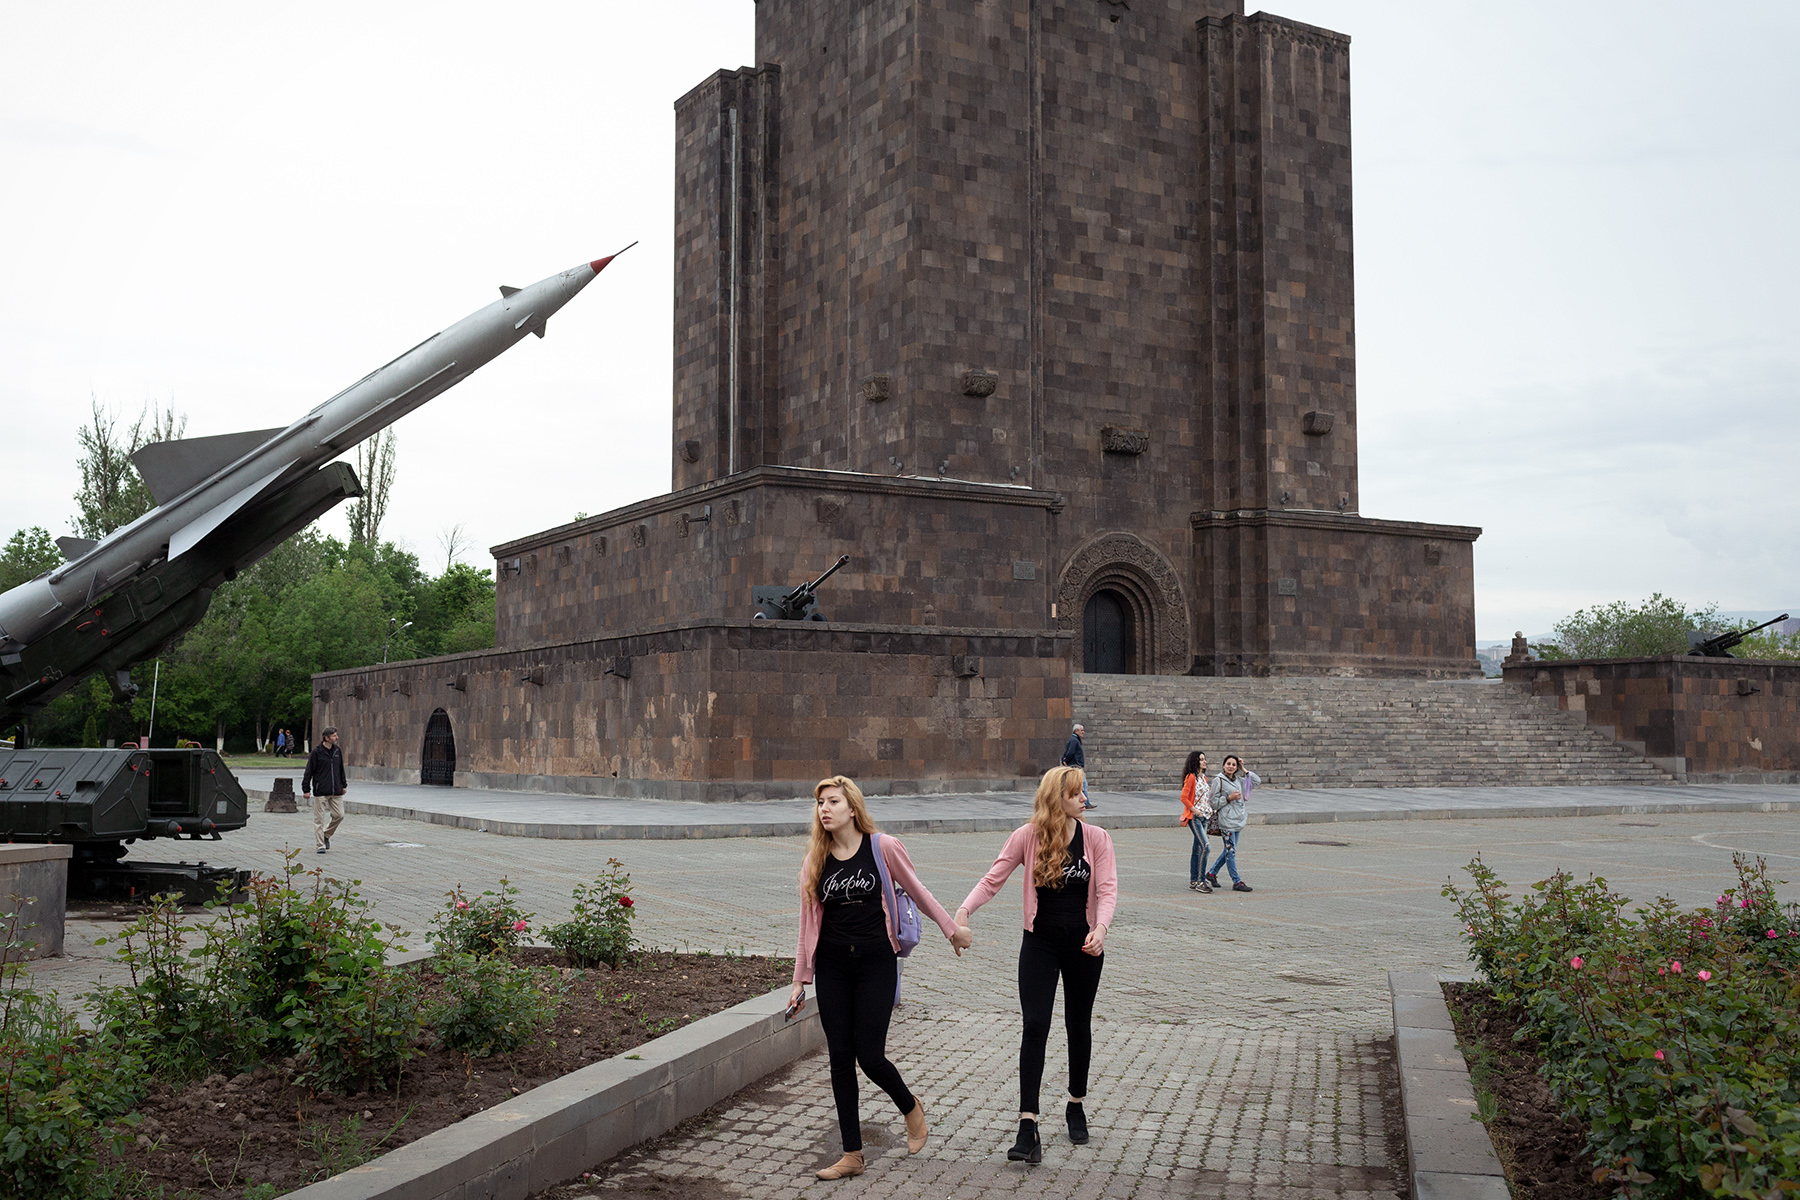 Twin girls walk in front of a soviet SA-2 missile exposed in the Victory park of Yerevan on May 6, 2018